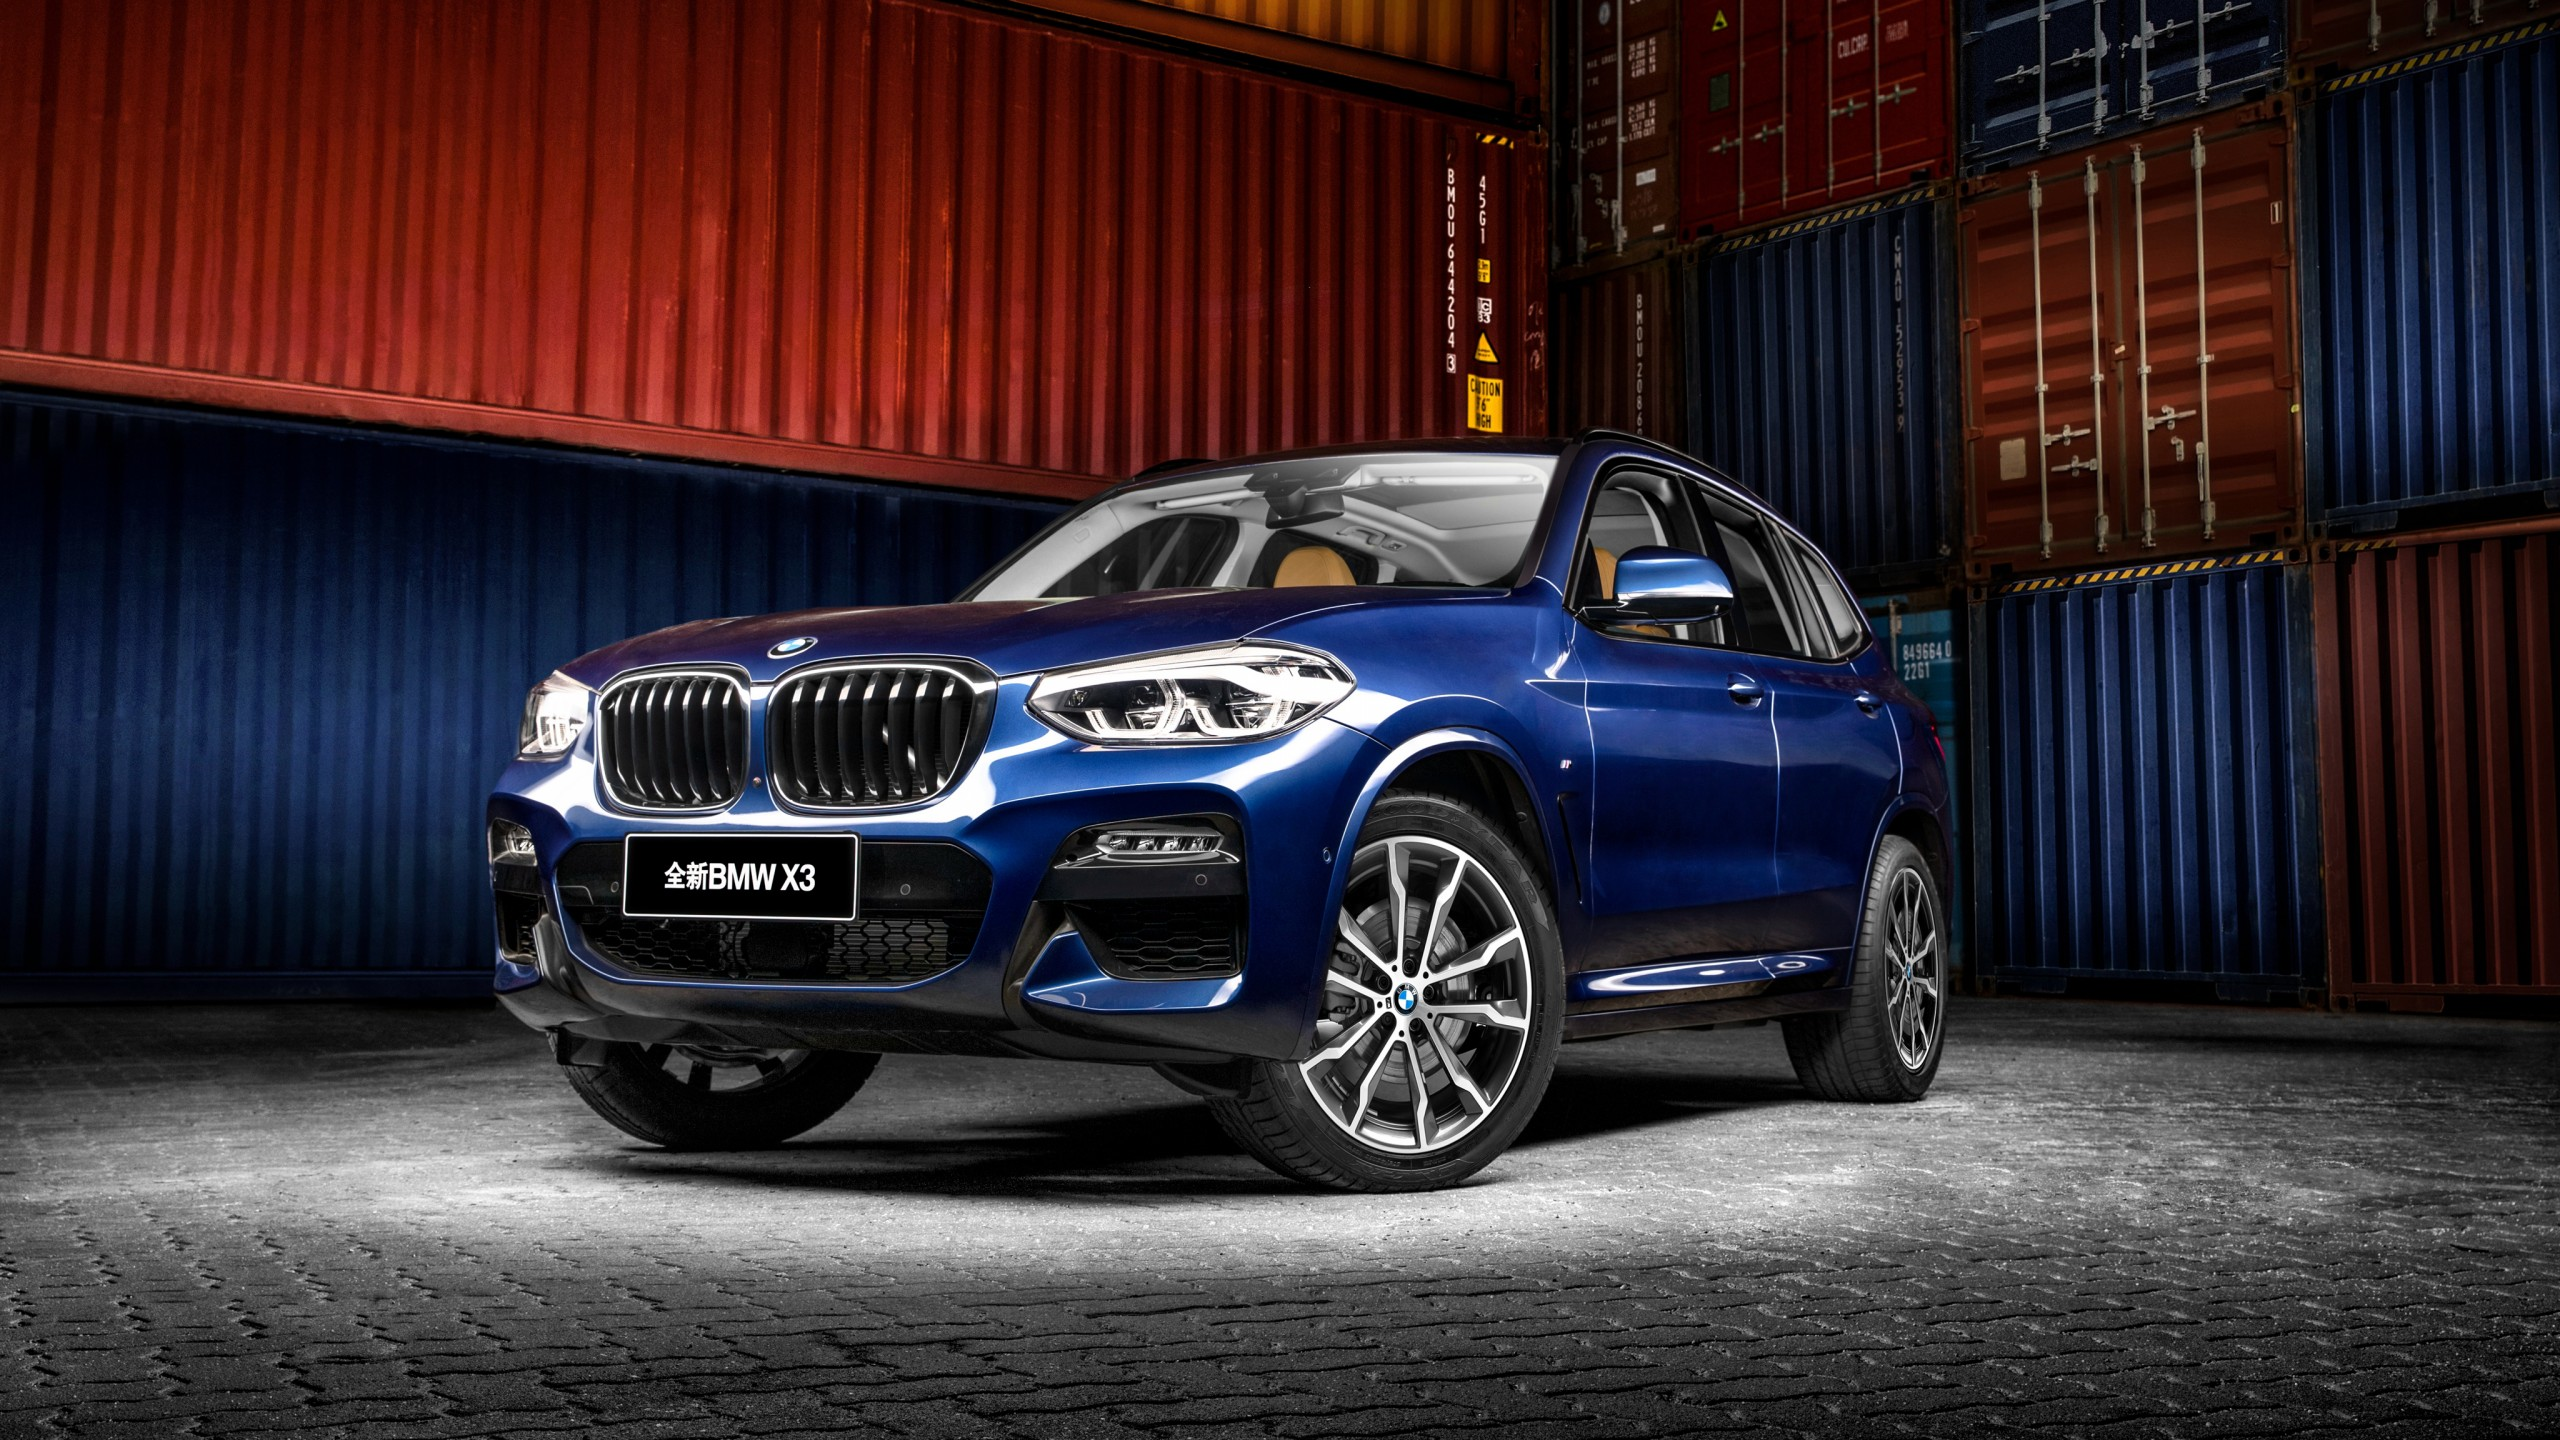 2018 Bmw X3 Xdrive30i M Sport China 4k 2 Wallpaper Hd